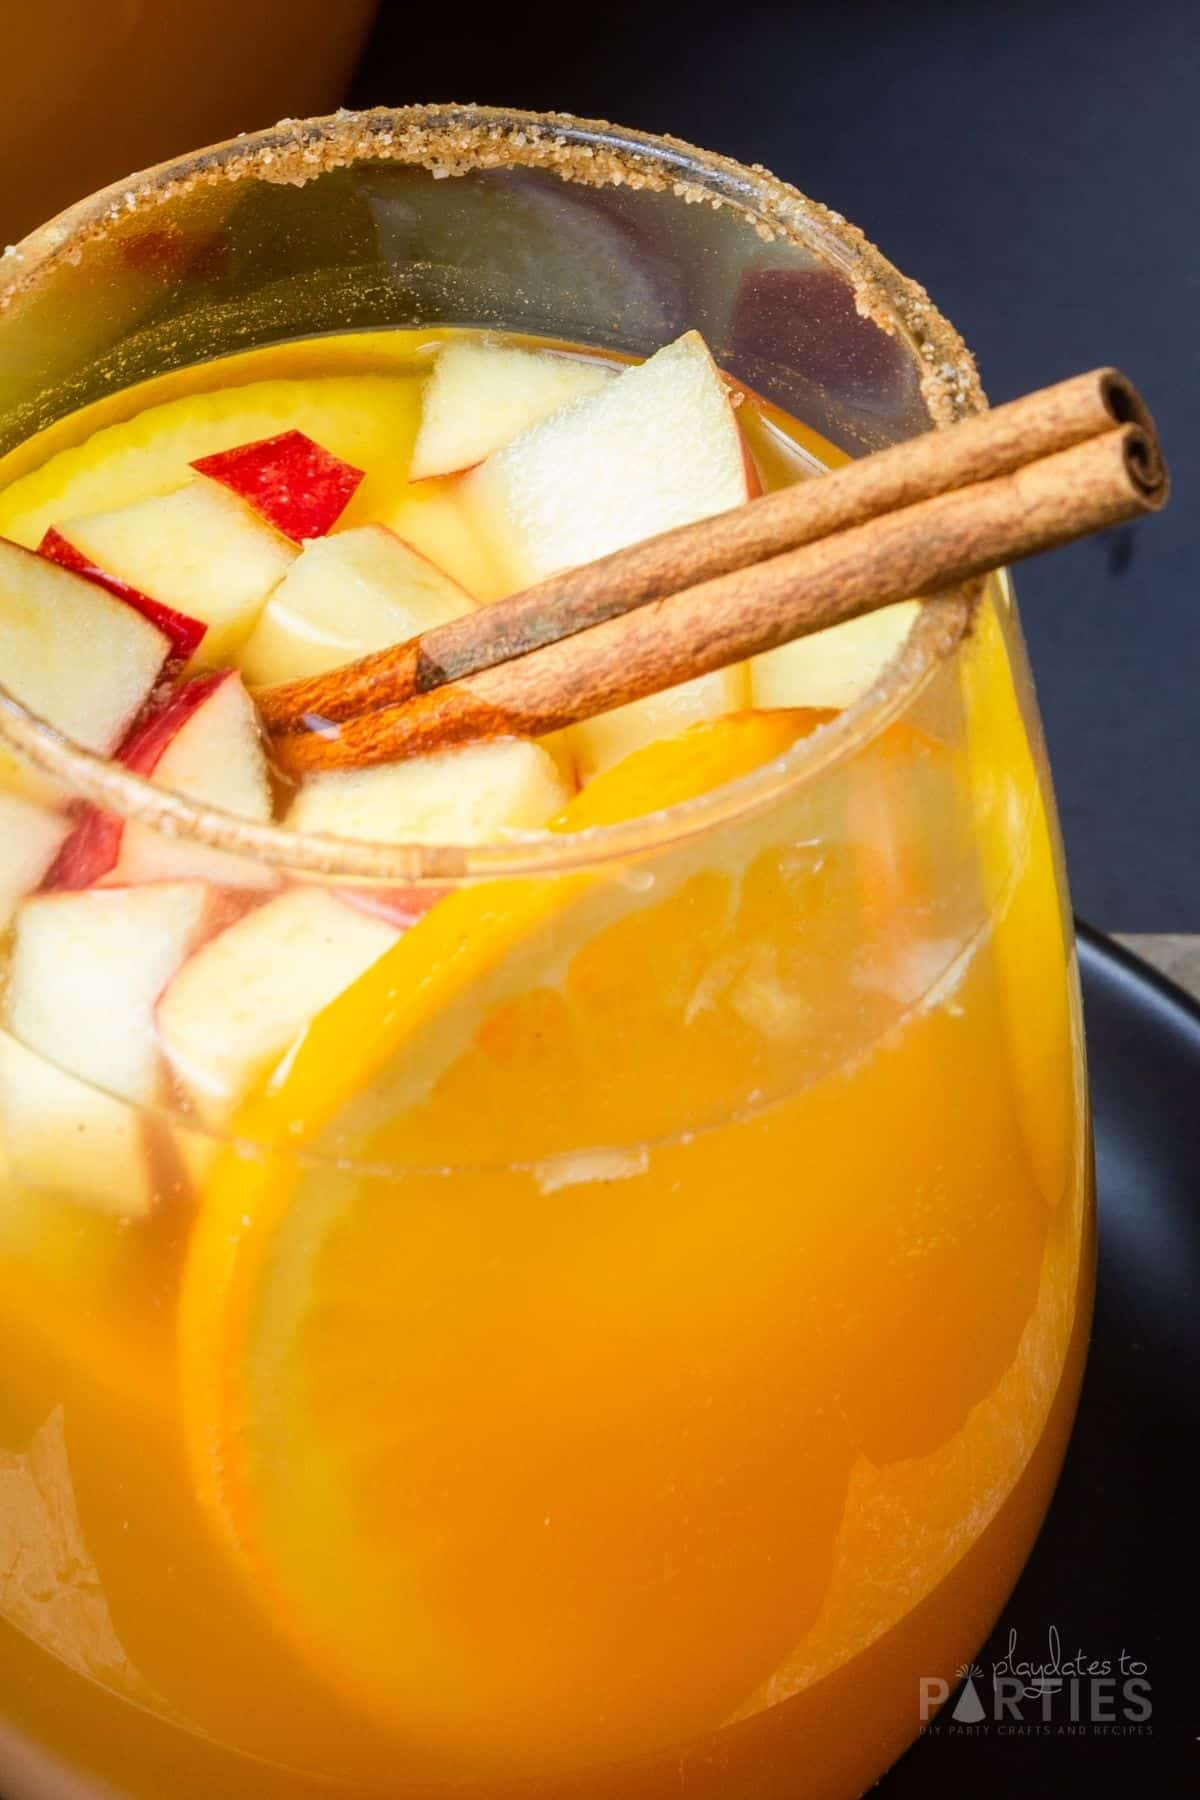 Close up of a glass of sangria with a cinnamon sugar rim and garnished with a stick of cinnamon.